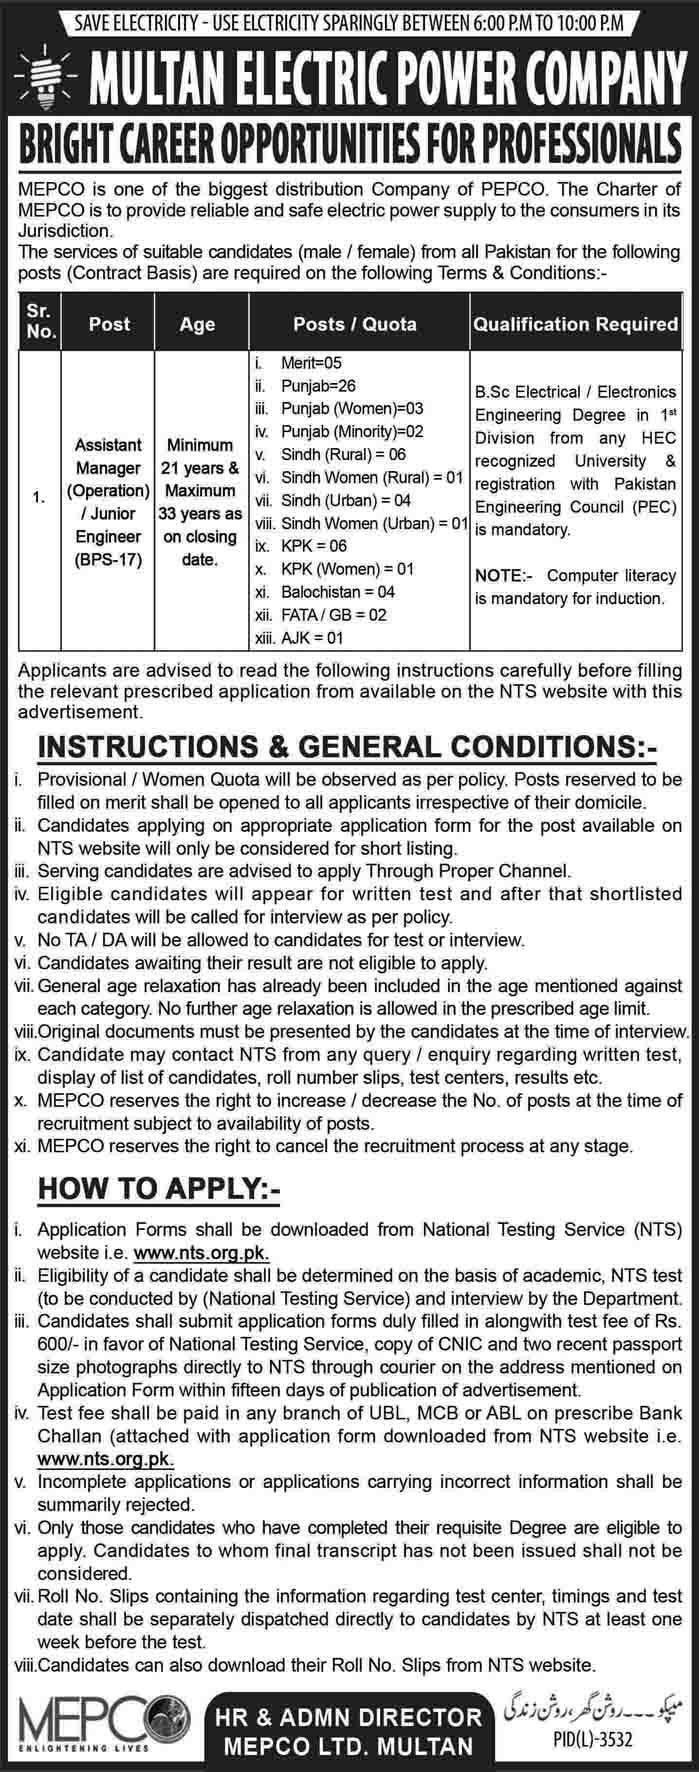 MEPCO Jobs 2017 Multan Electric Power Company Jobs Application Form, NTS Test Date